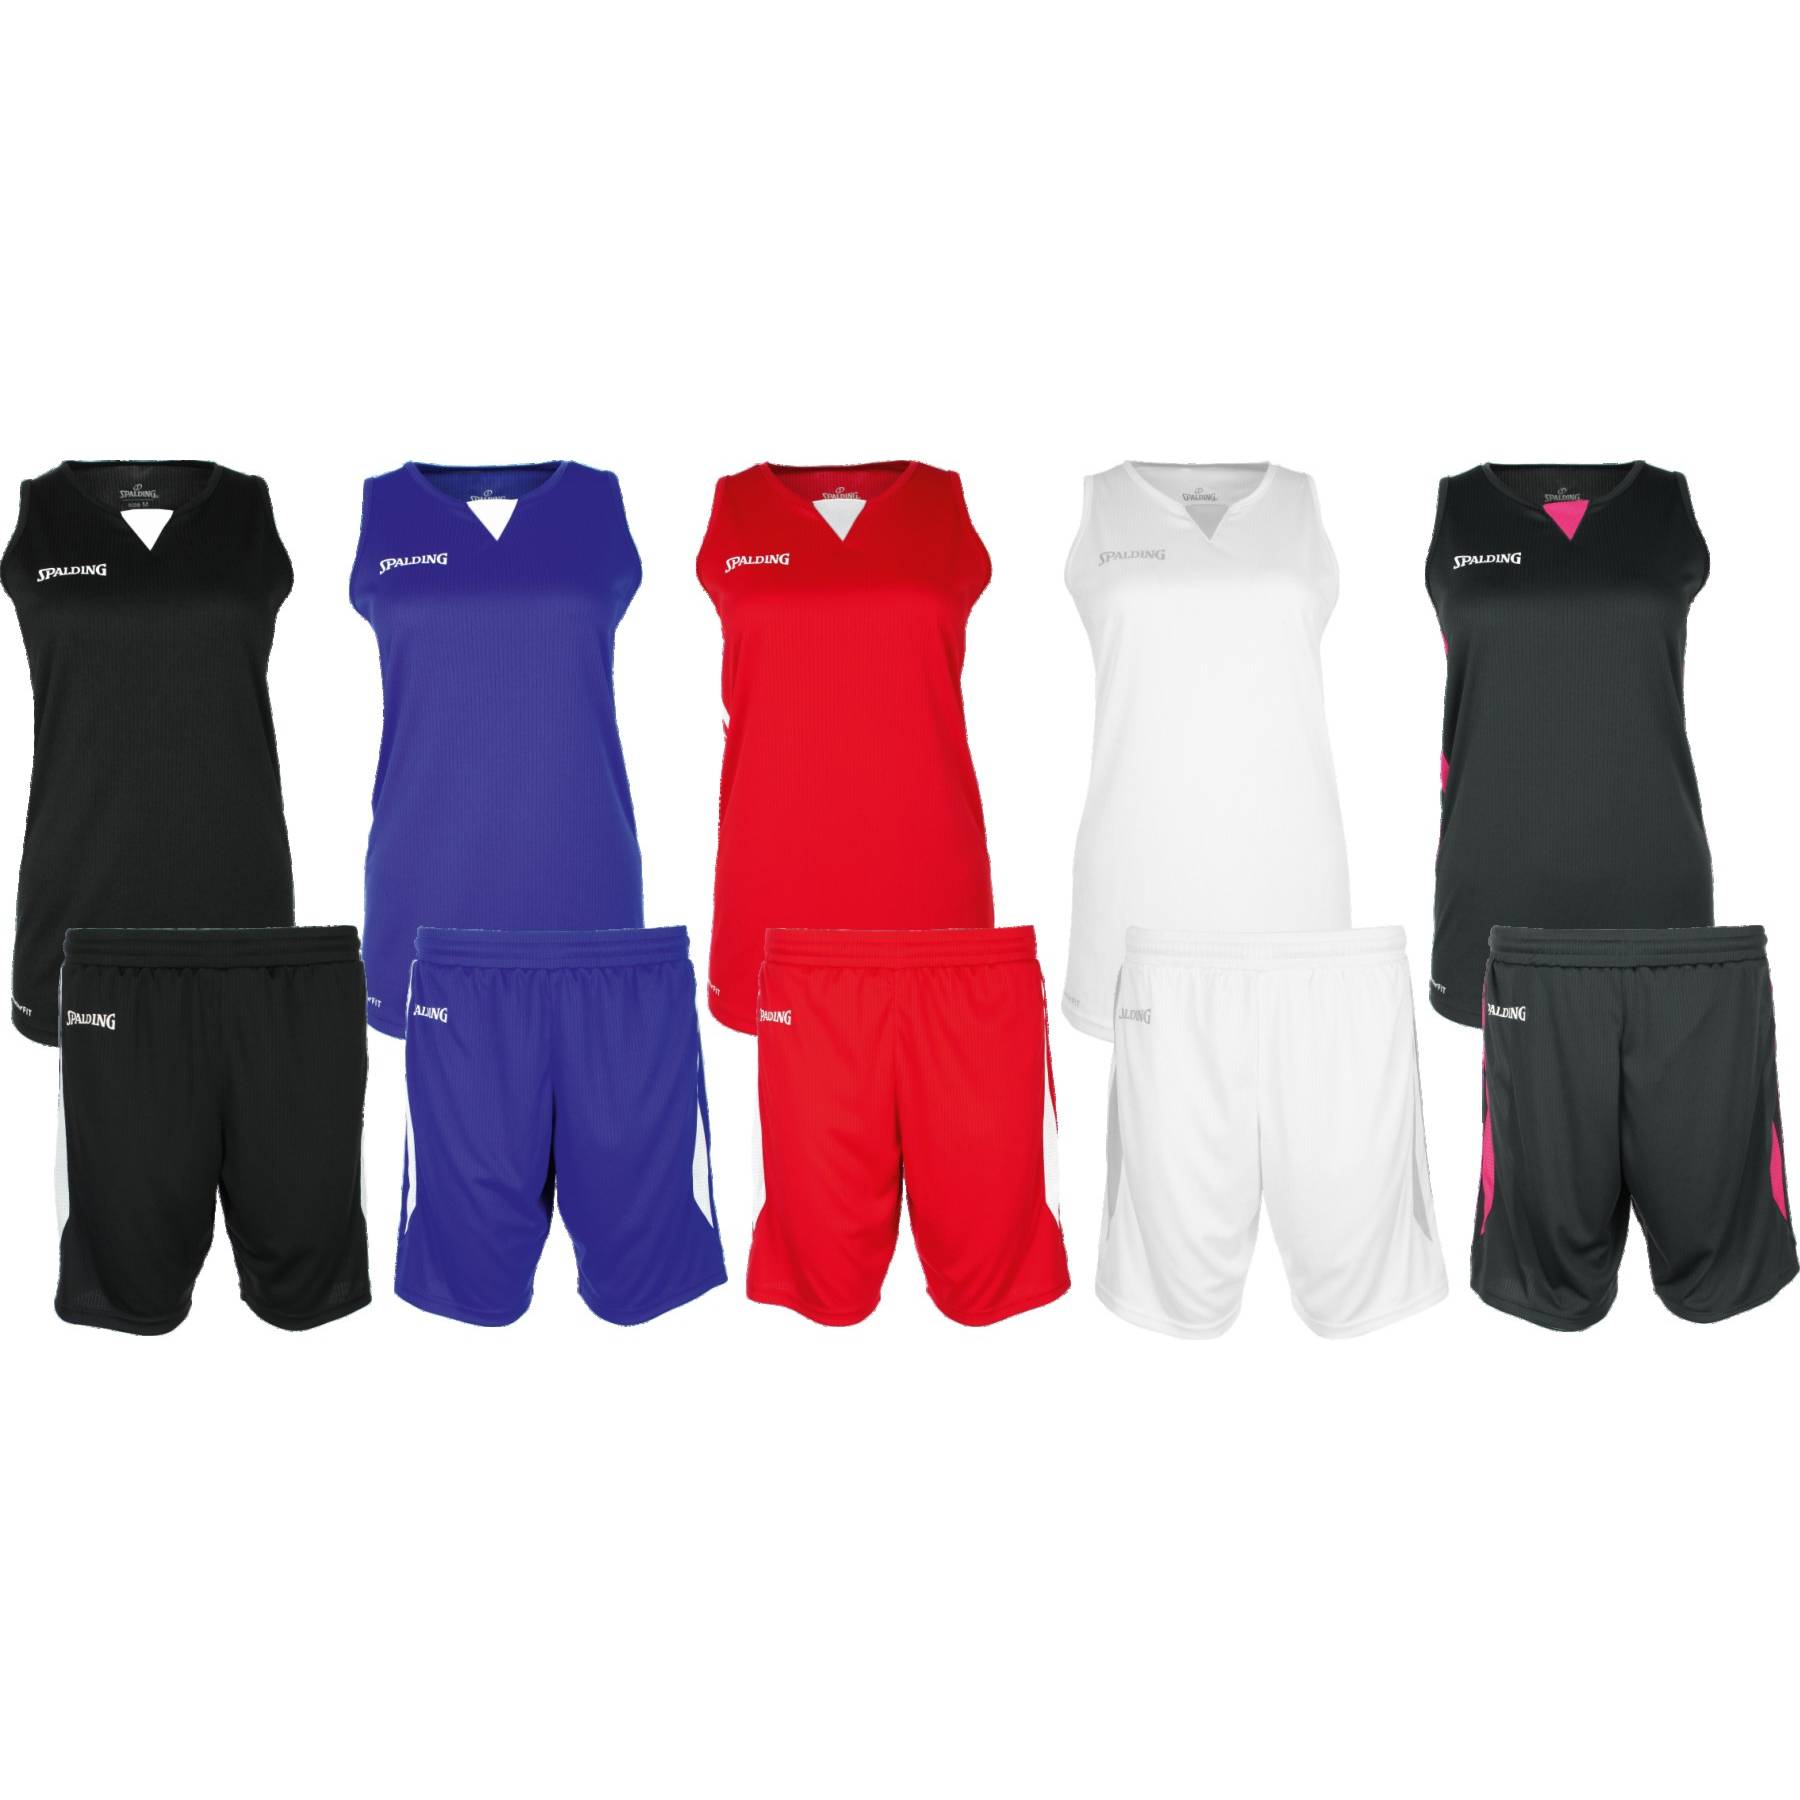 Teamwear - Spalding 4Her III Womens Kit